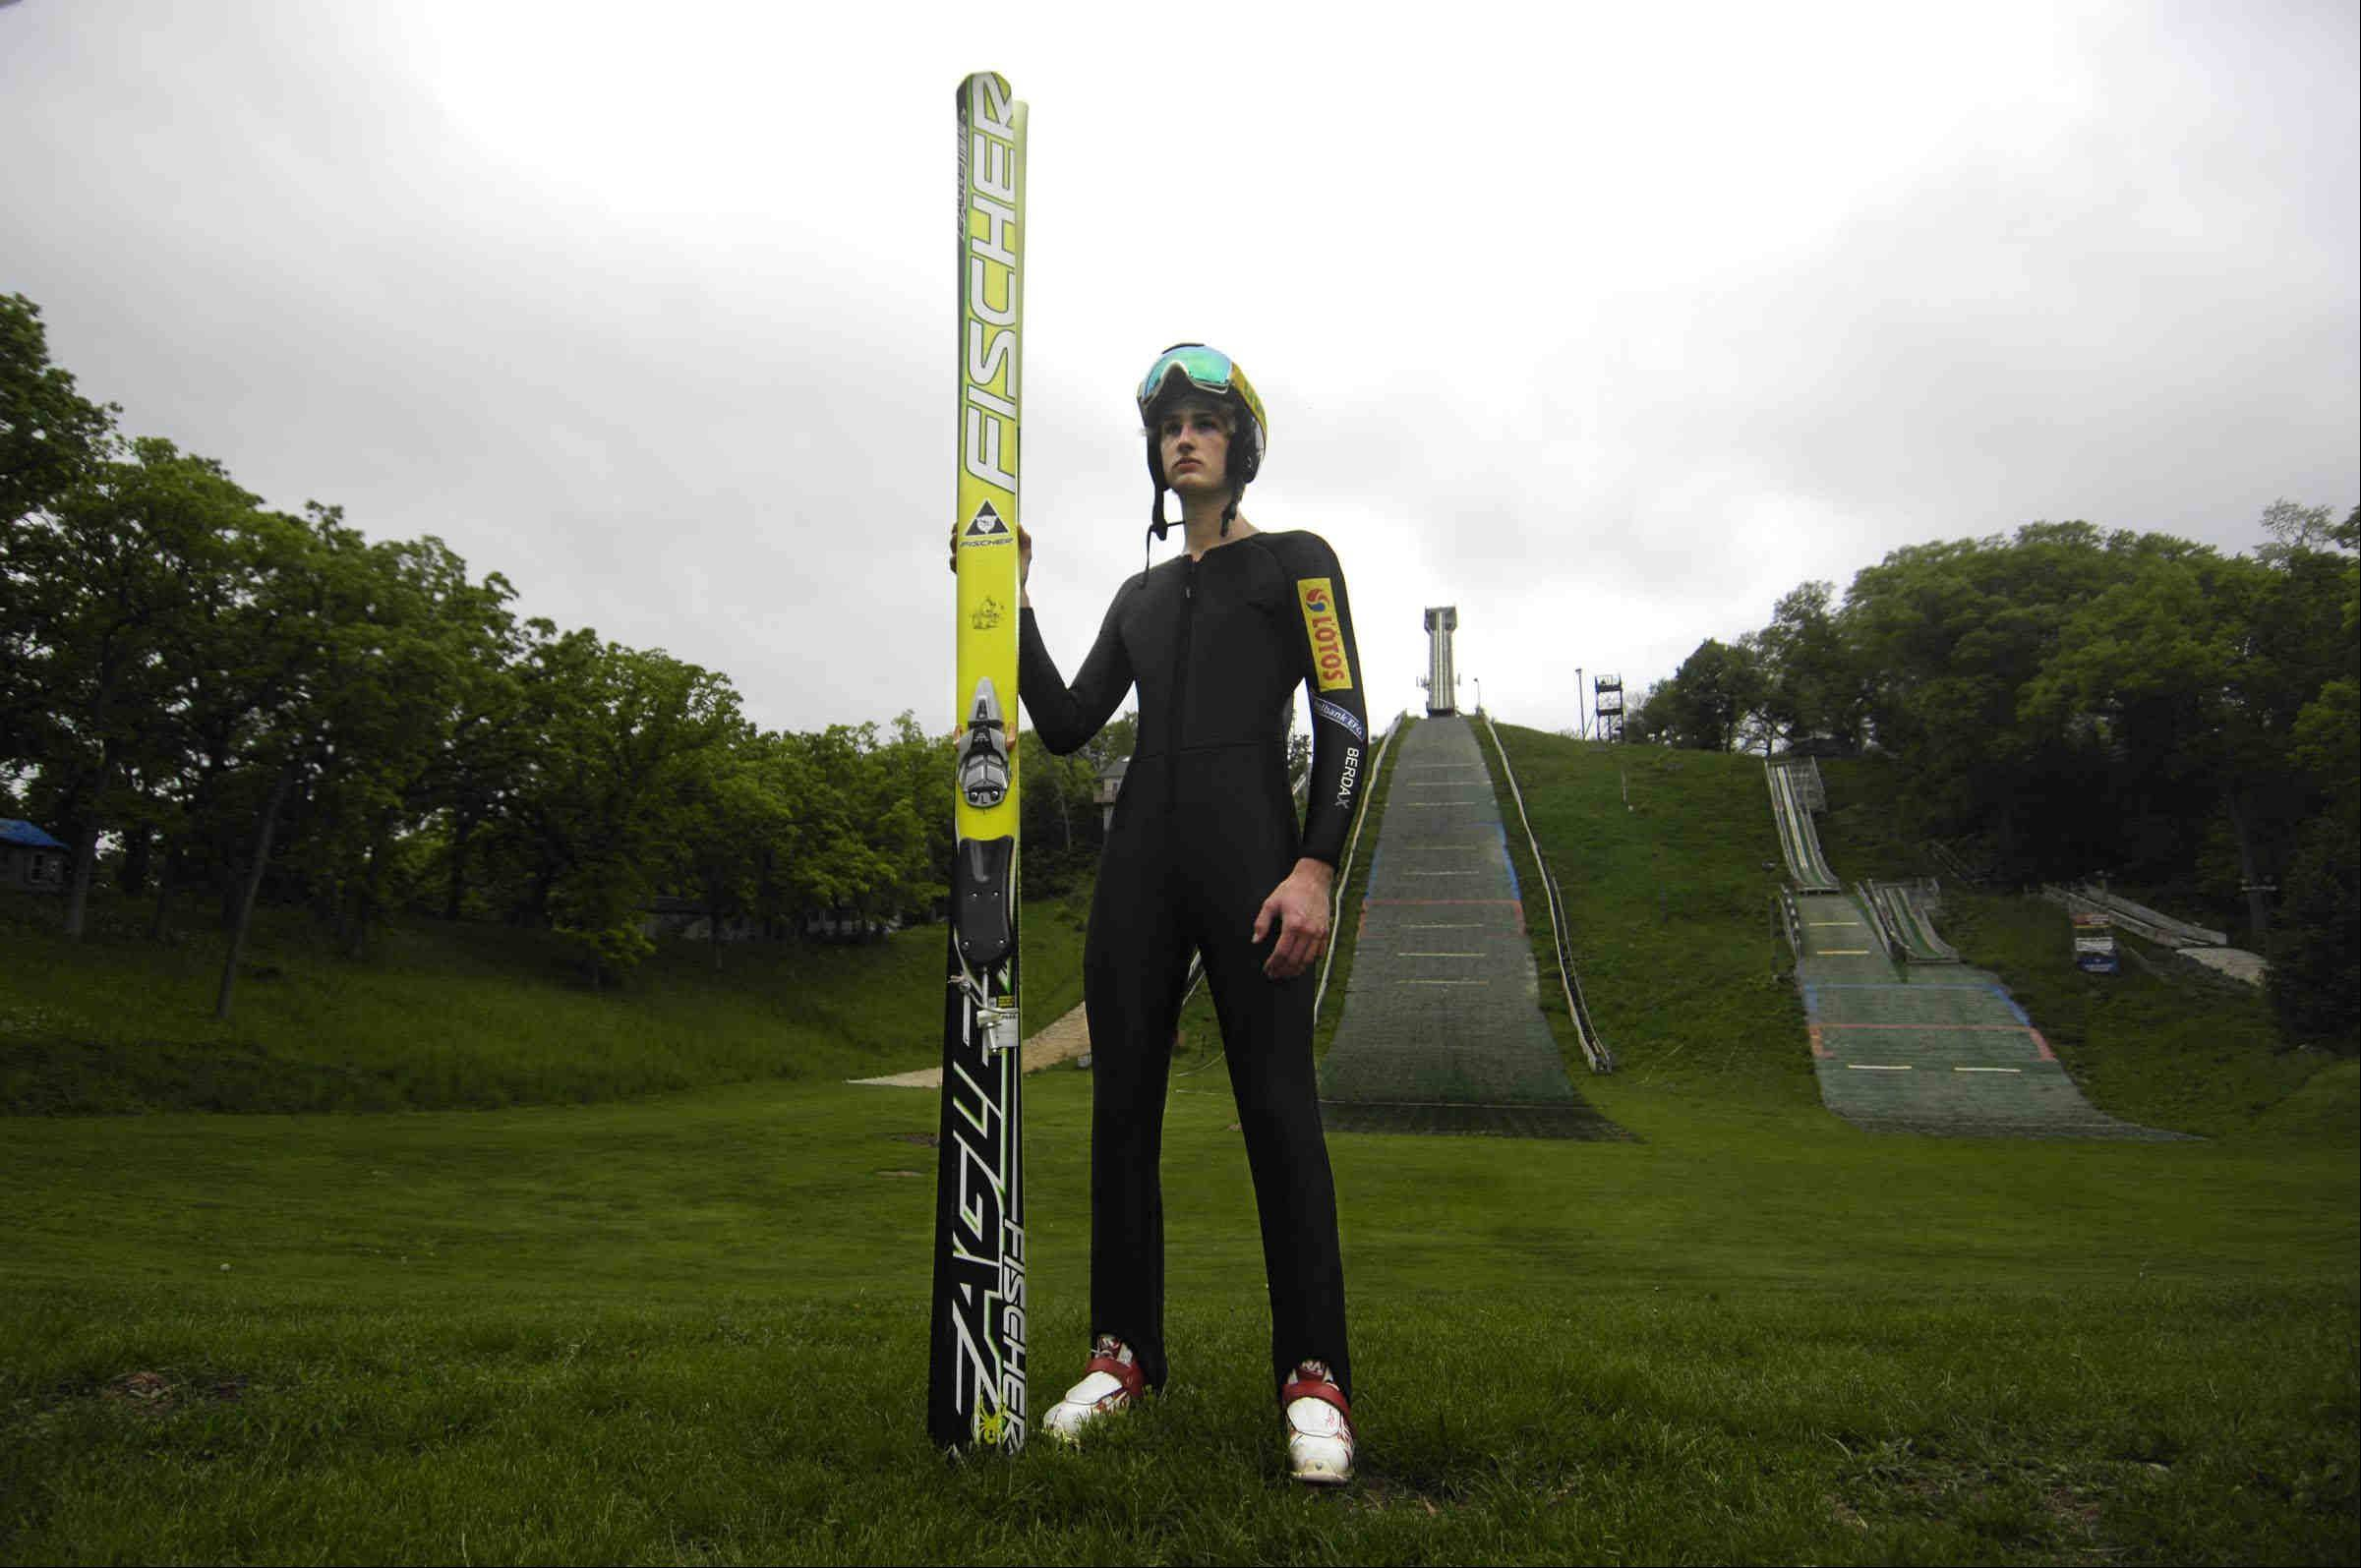 Kevin Bickner, 16, of Wauconda has a tall, thin build that's perfect for the sport of ski jumping.